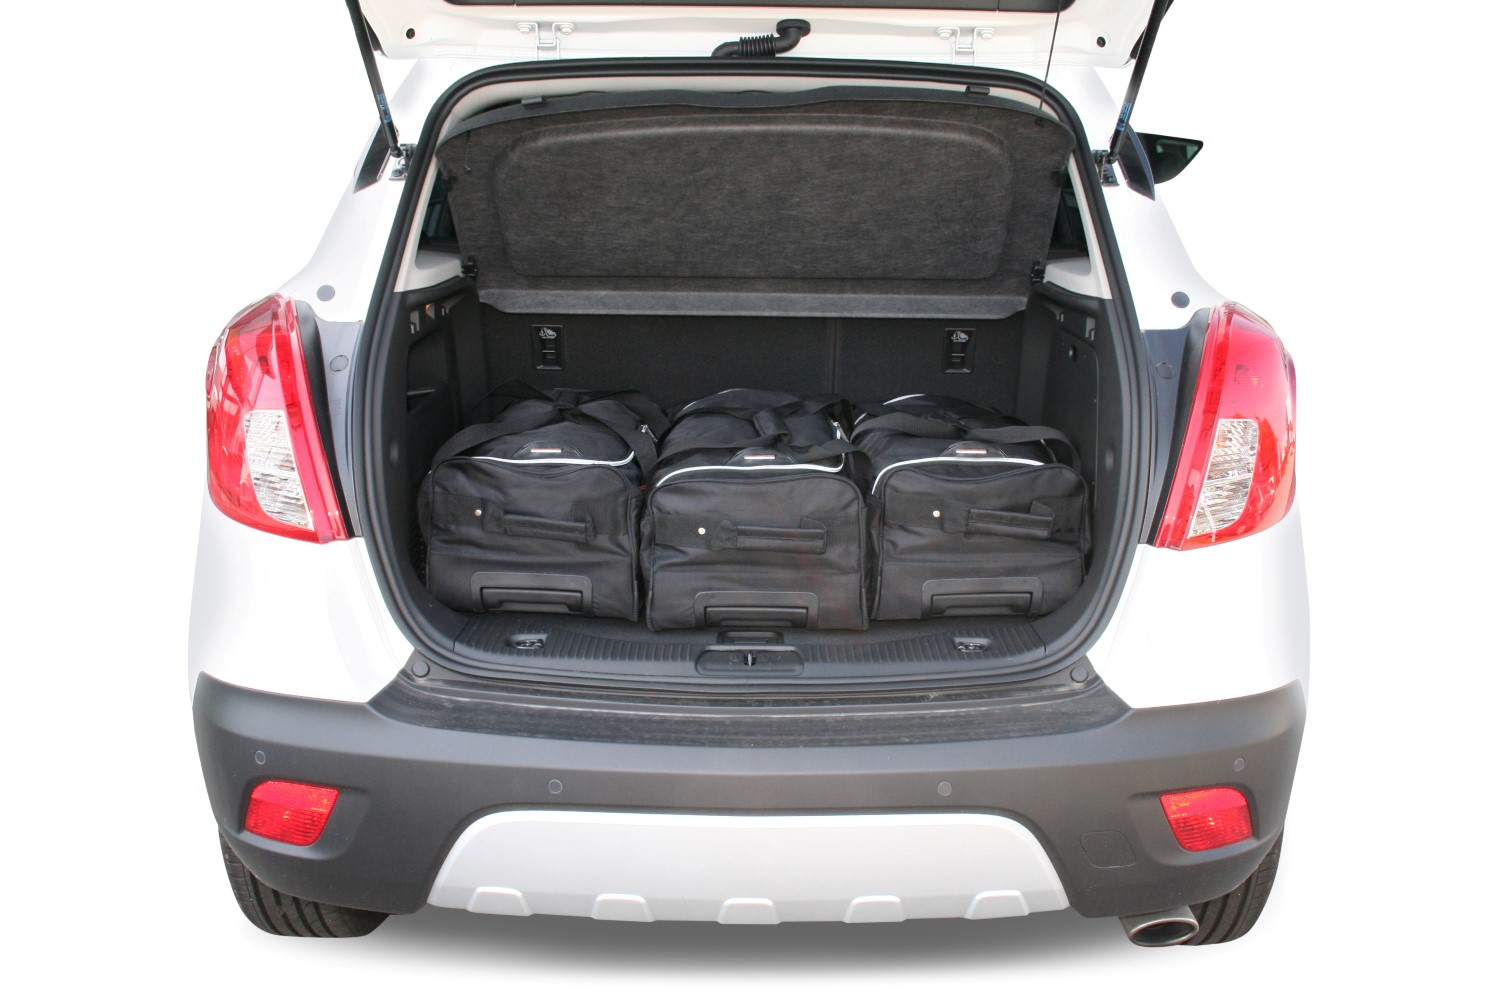 opel mokka mokka x car travel bags car. Black Bedroom Furniture Sets. Home Design Ideas